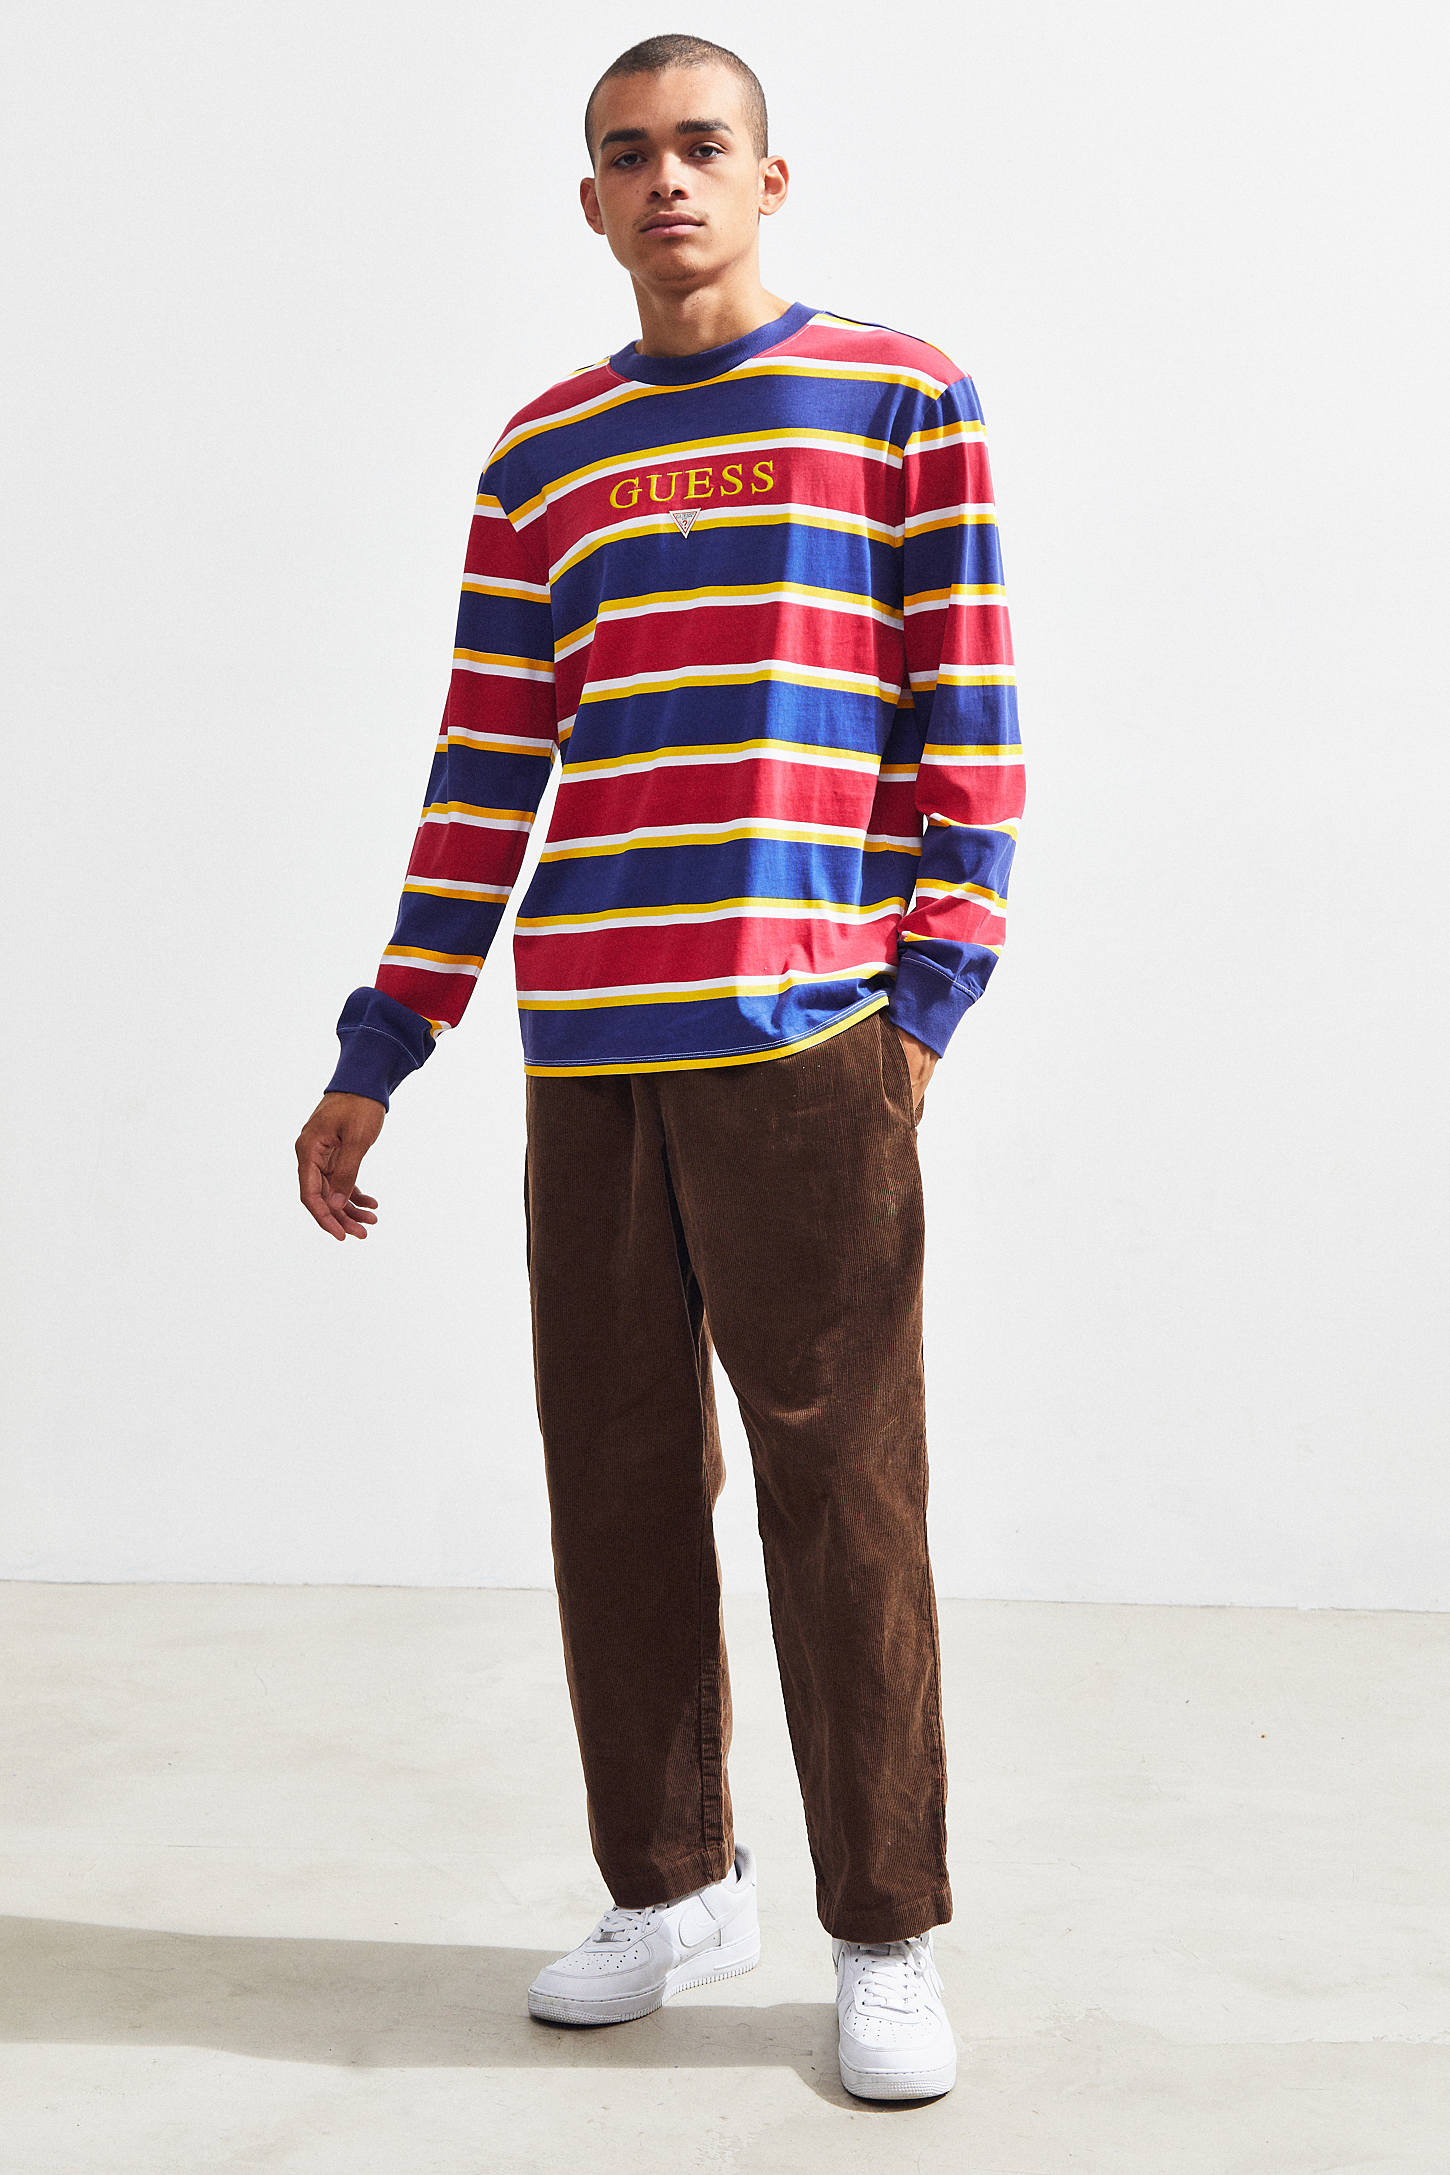 Guess Kenmore Striped Long Sleeve Tee Urban Outfitters